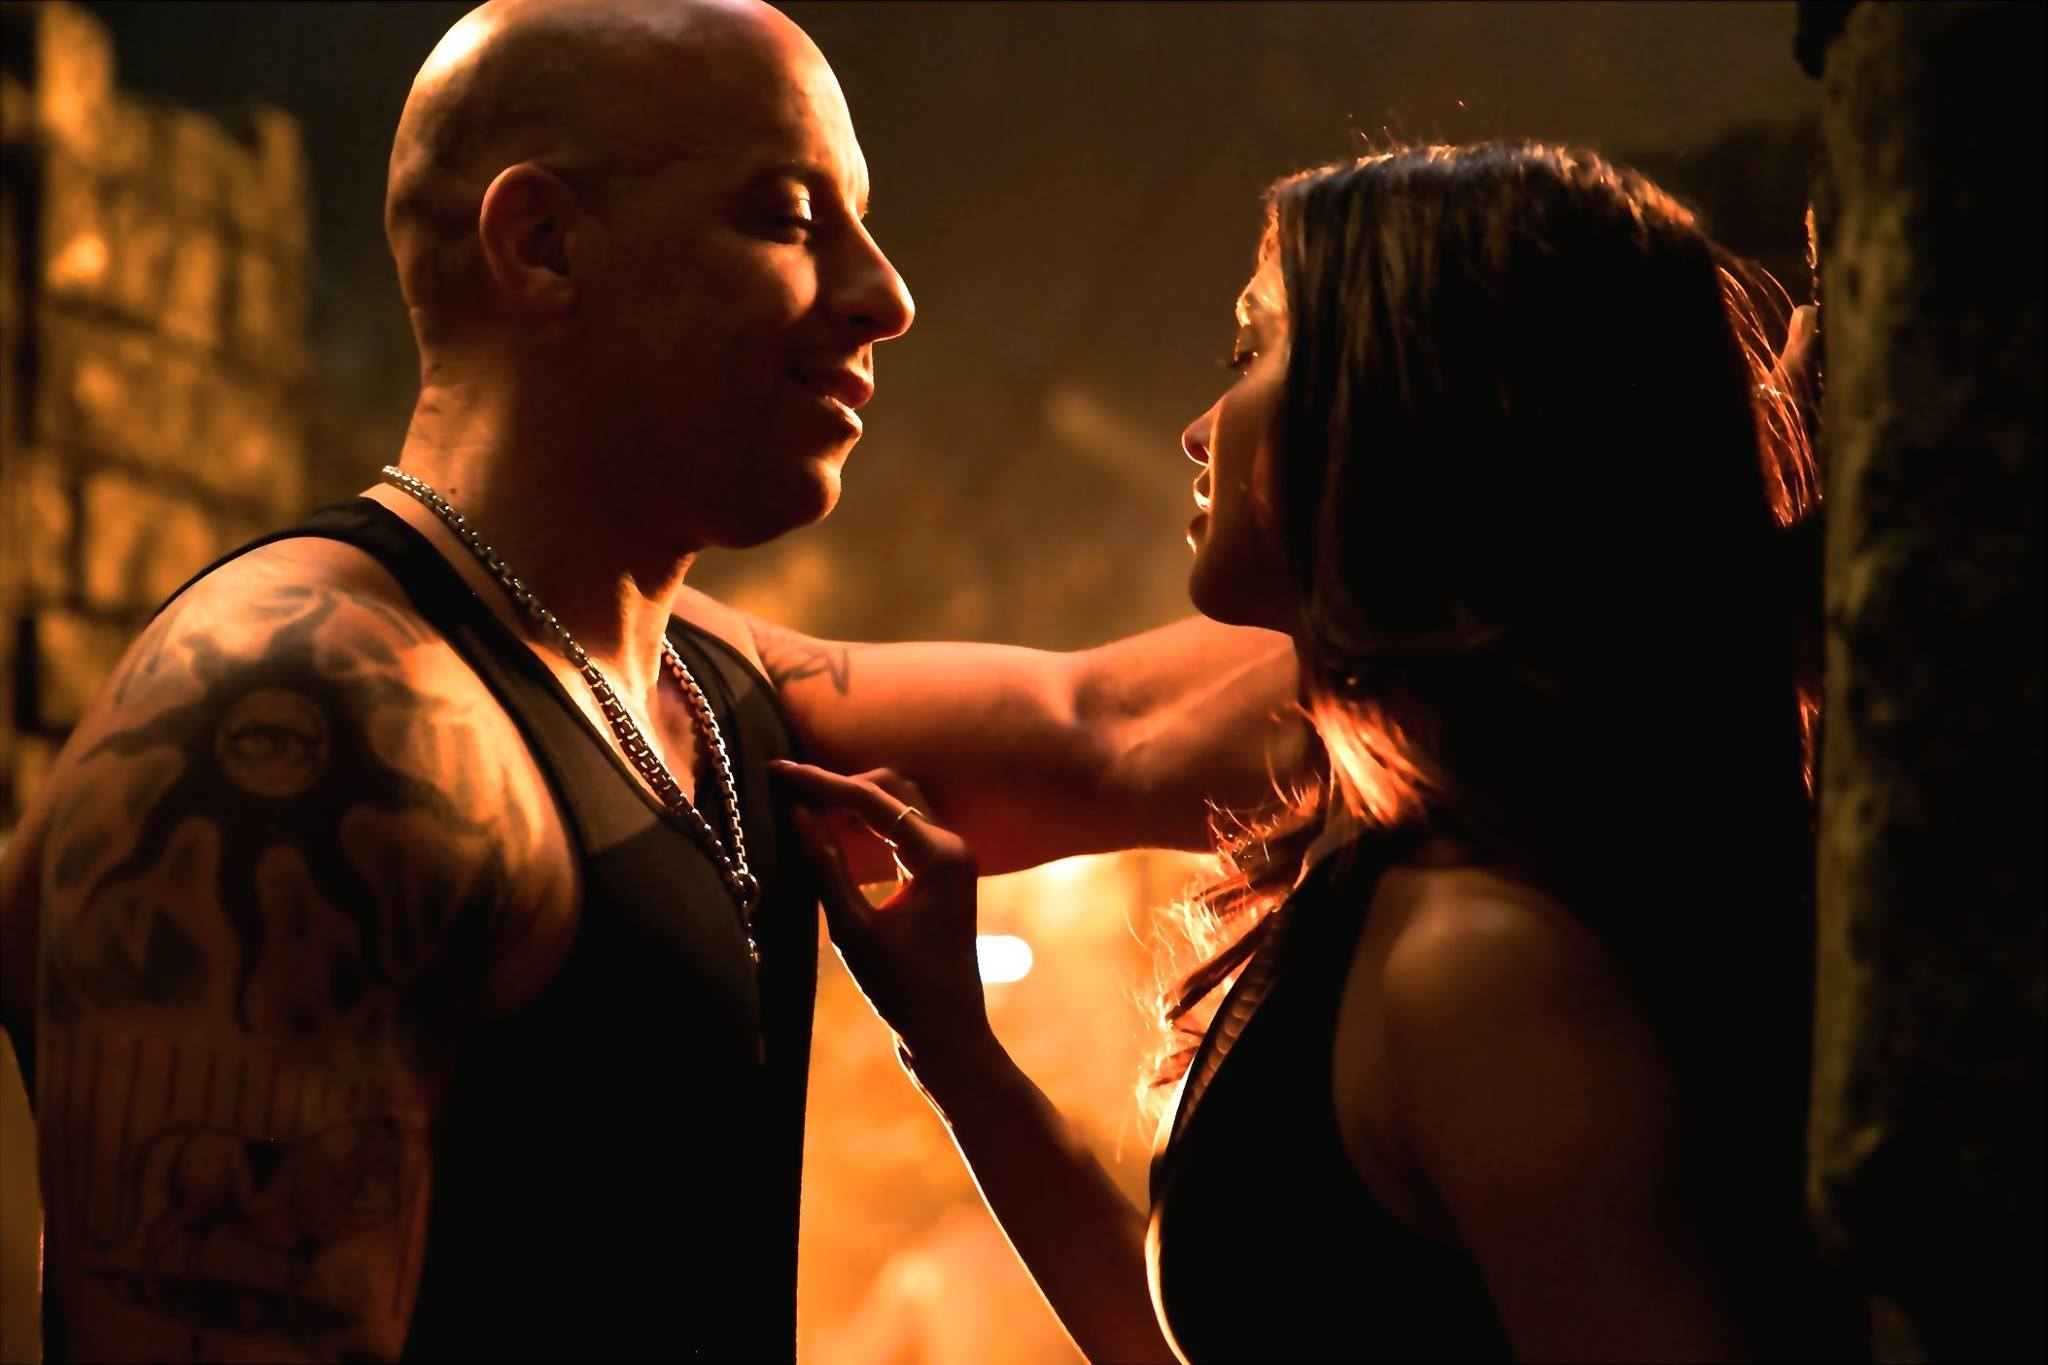 Character Posters Allow You To Go Up Close And Personal With The Cast Of xXx 3